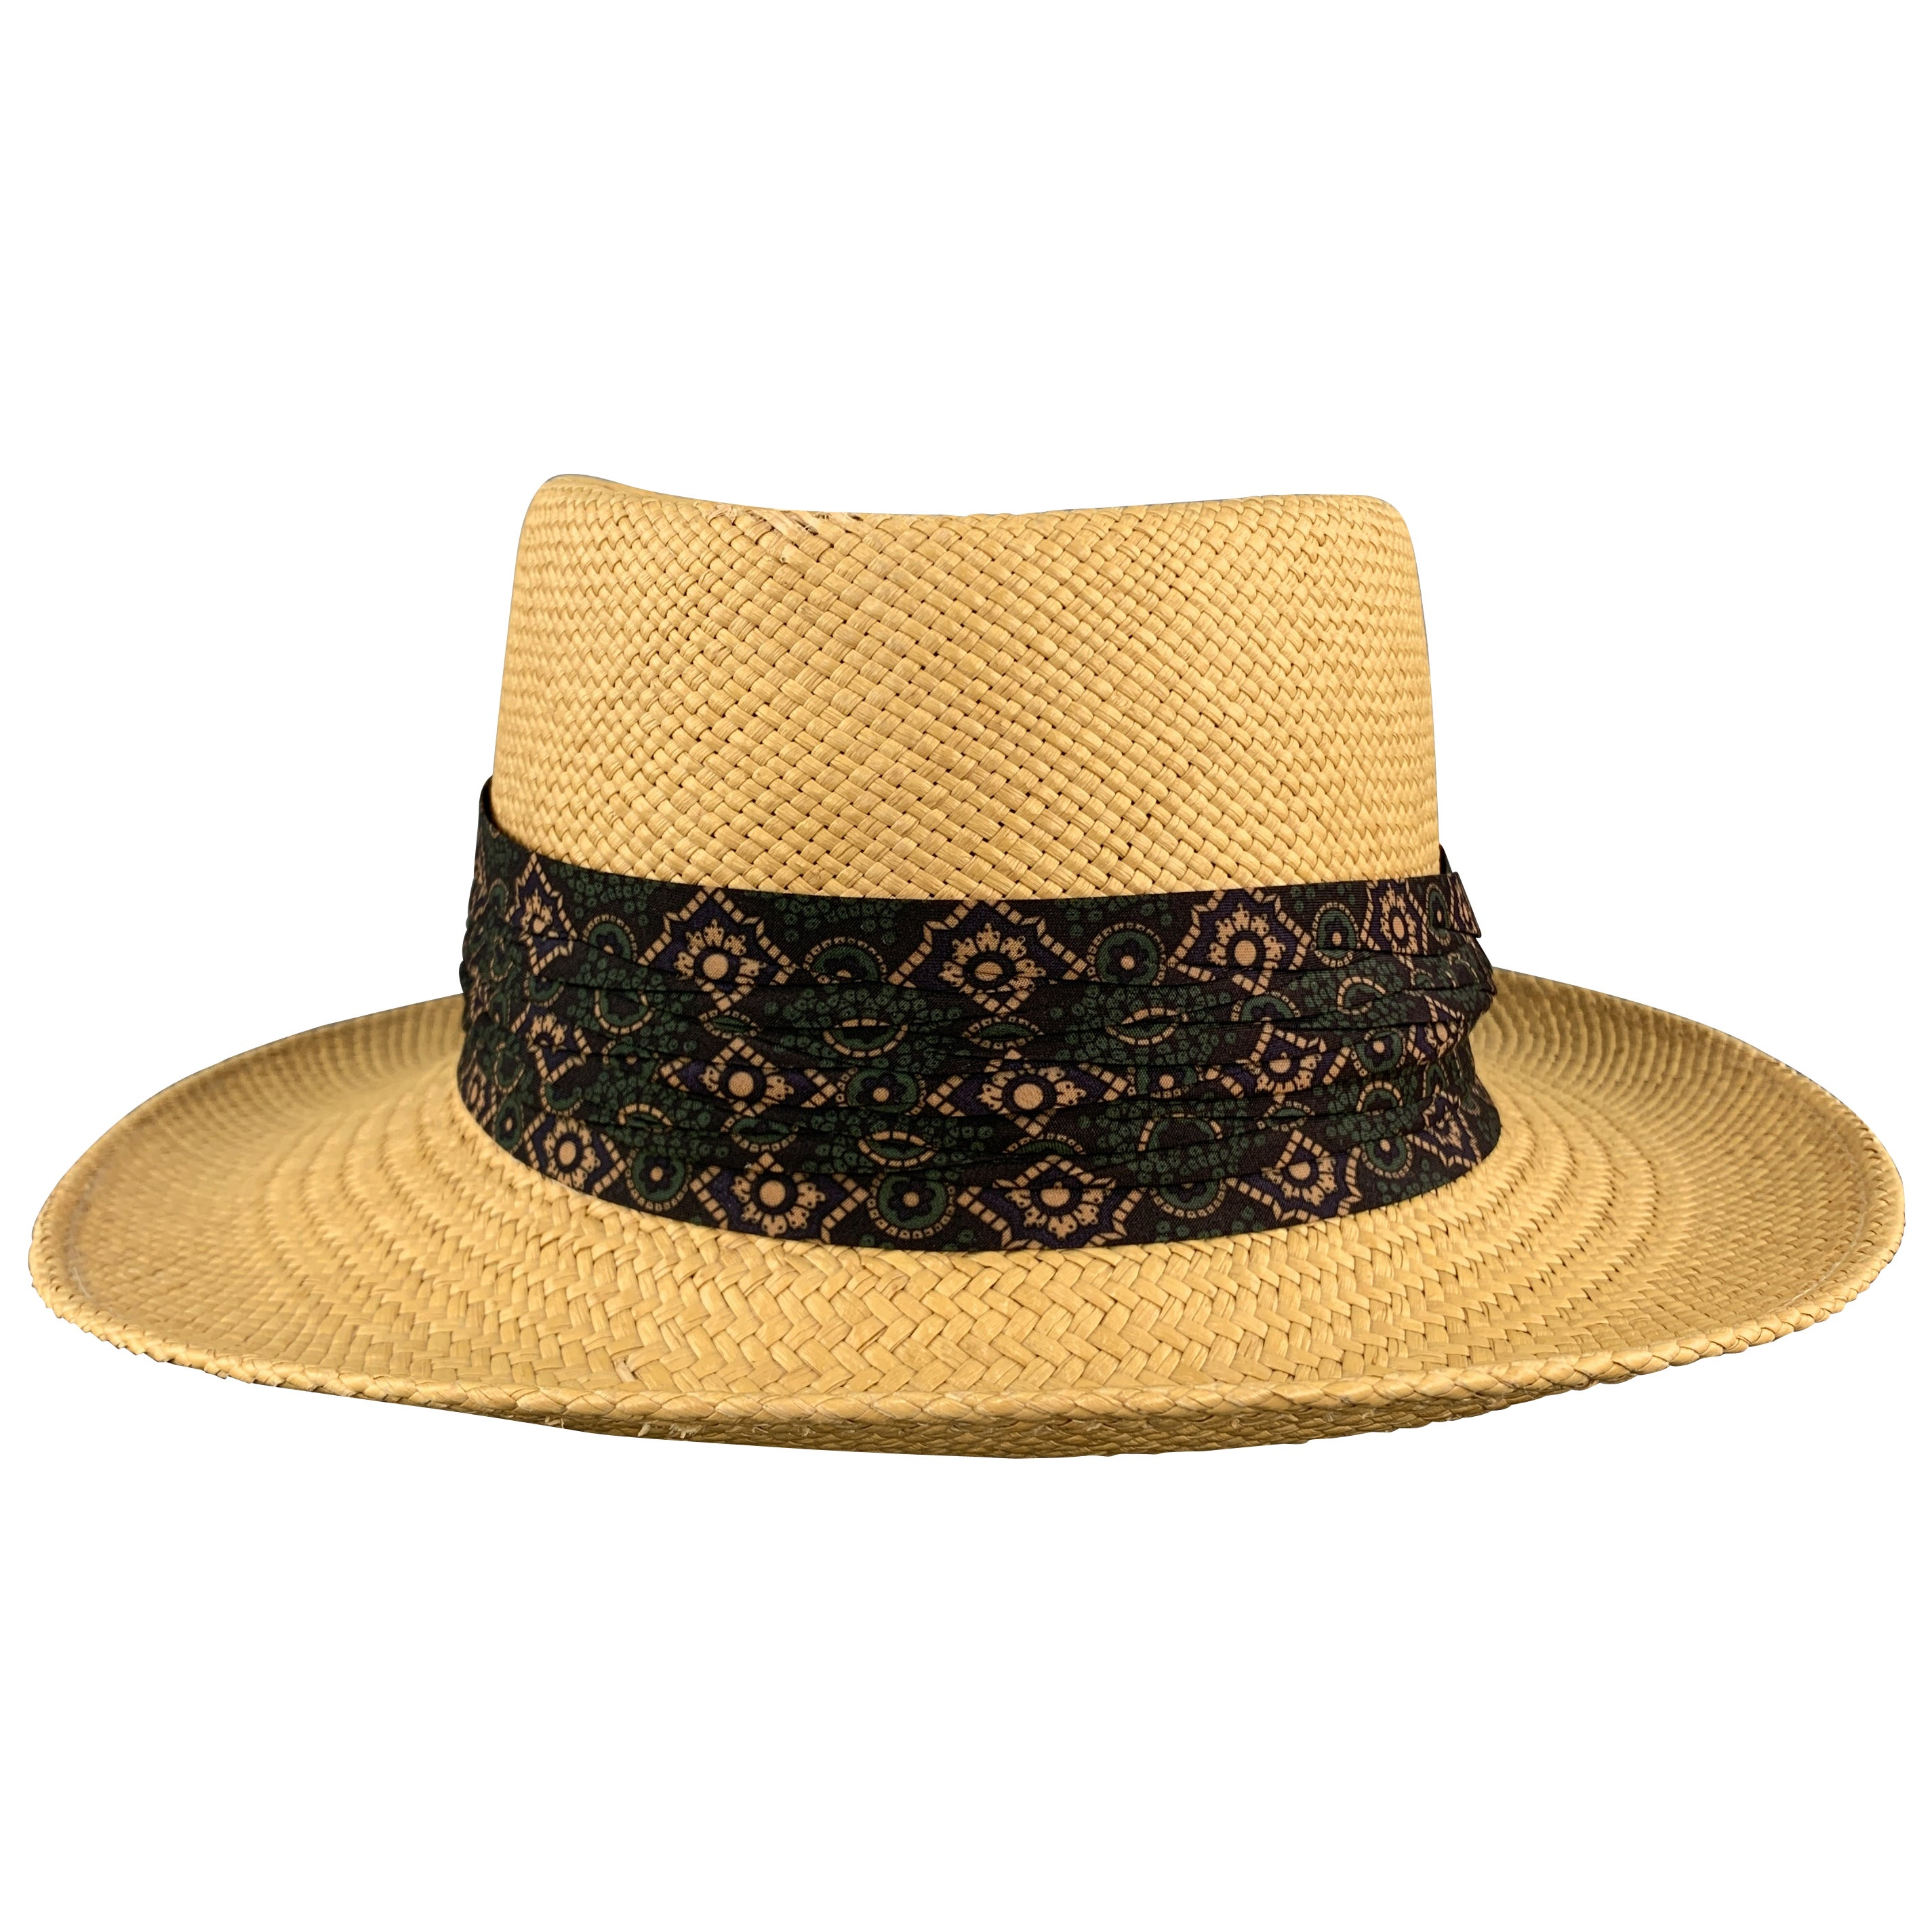 STETSON Natural Woven Straw Gathered Stripe Hat